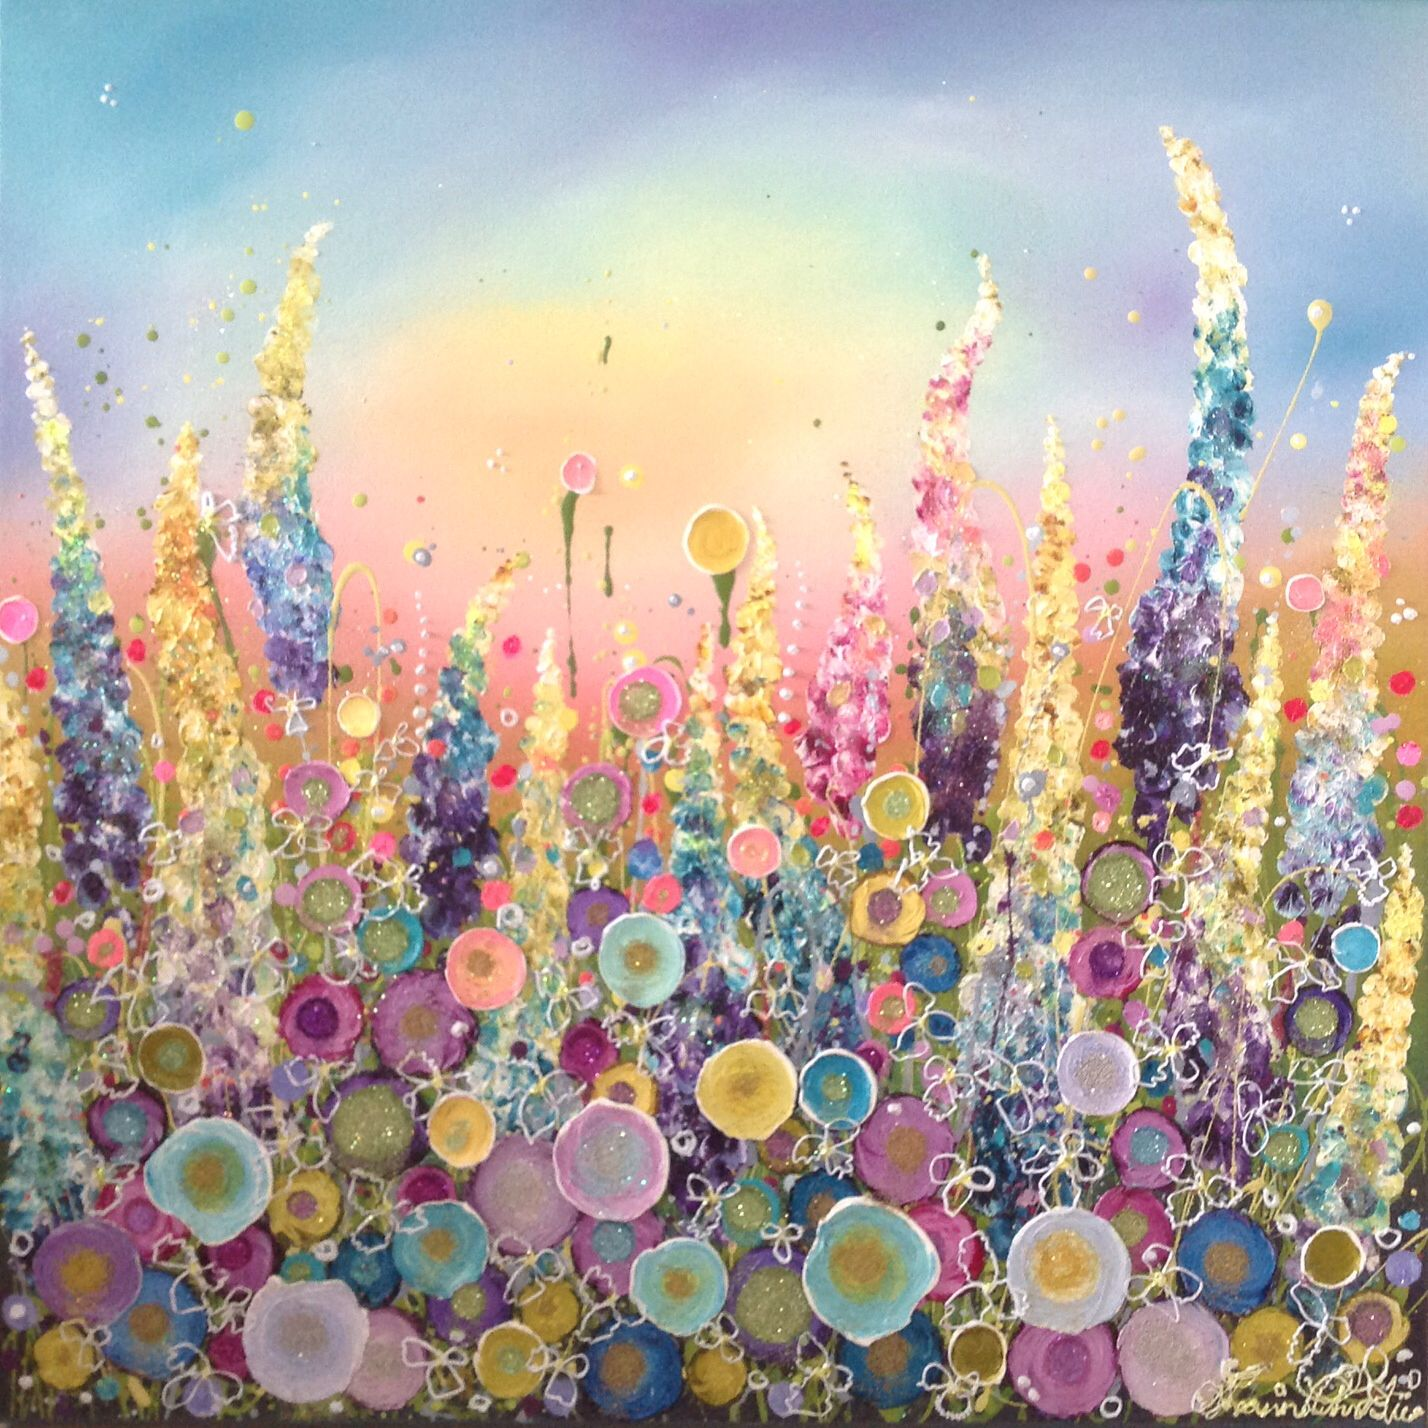 Glitter Glue And Paint Color Inspiration: Oil Art, Glitter Flowers, Sparkle